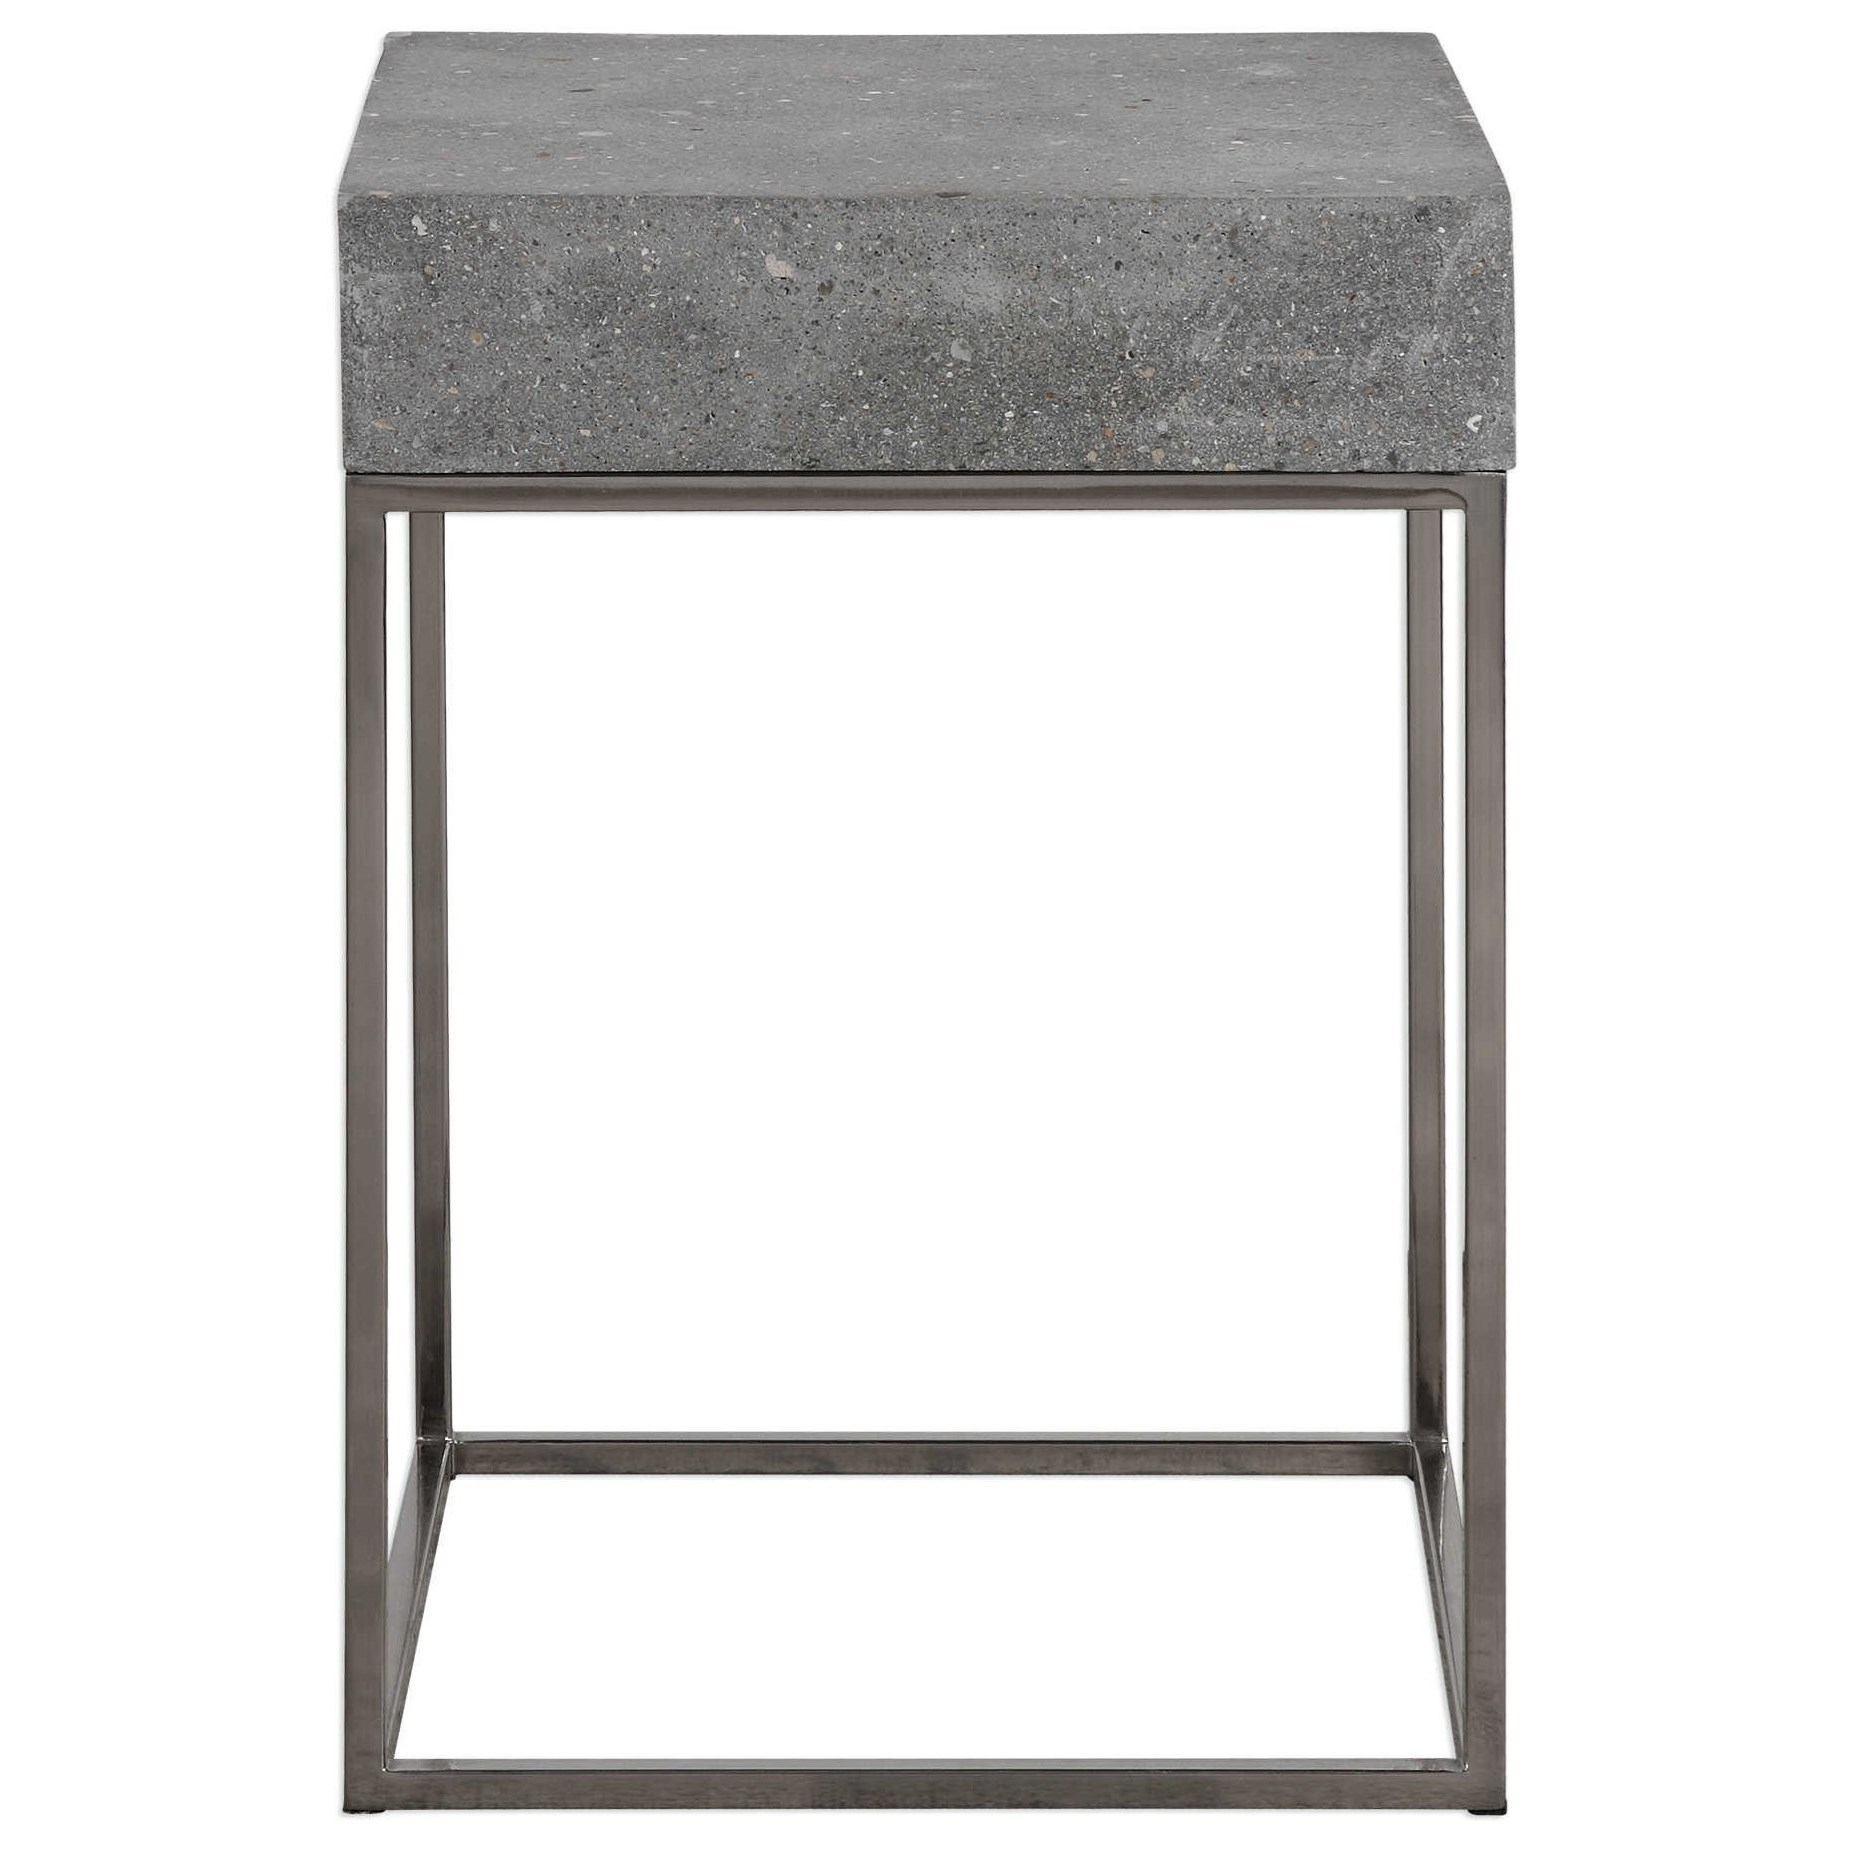 Uttermost Accent Furniture Jude Concrete Accent Table - Item Number: 24735